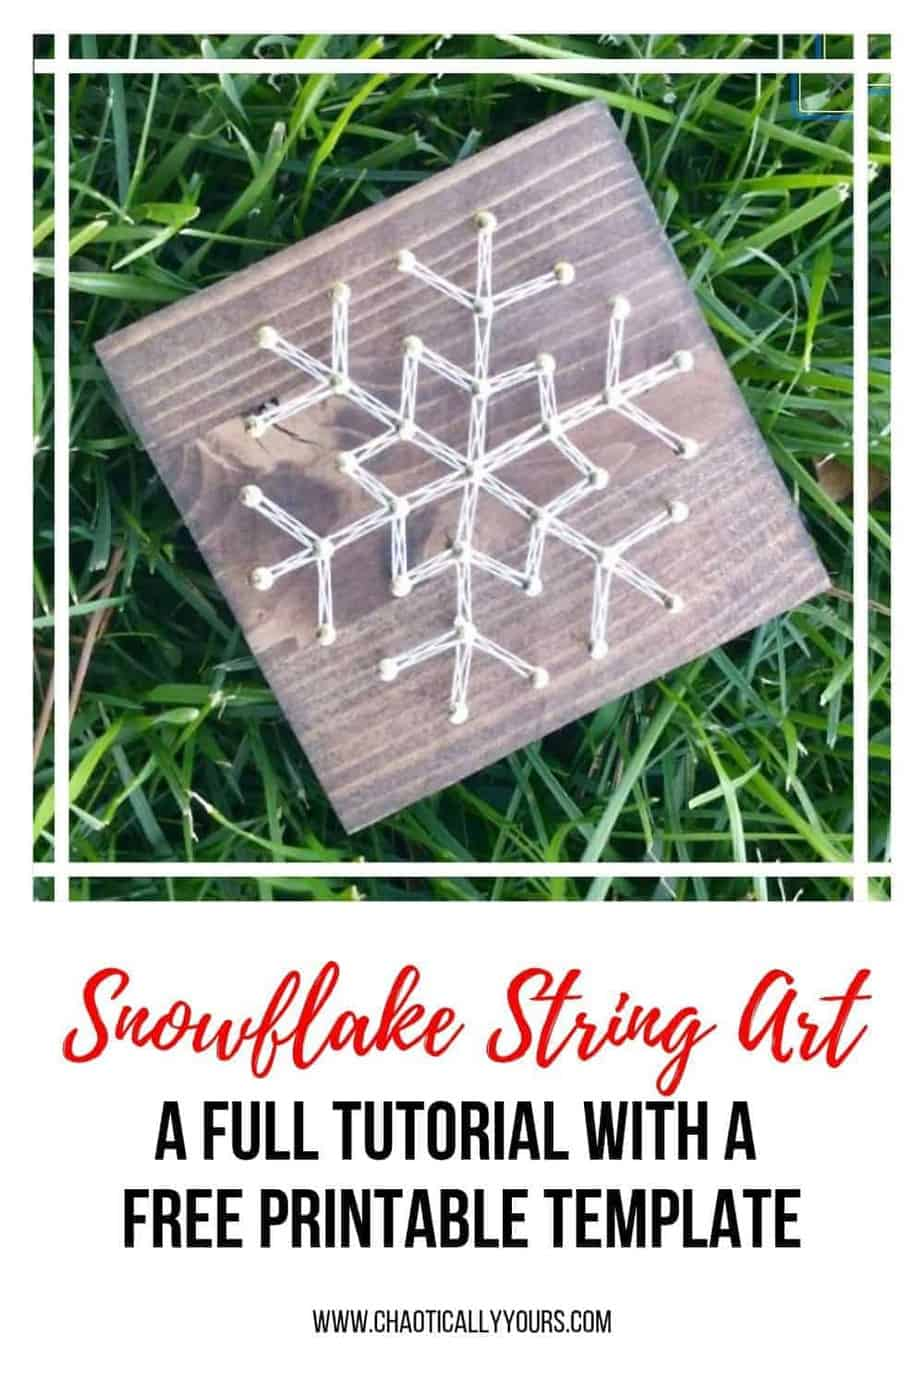 Simple snow flake string art tutorial with free printable template